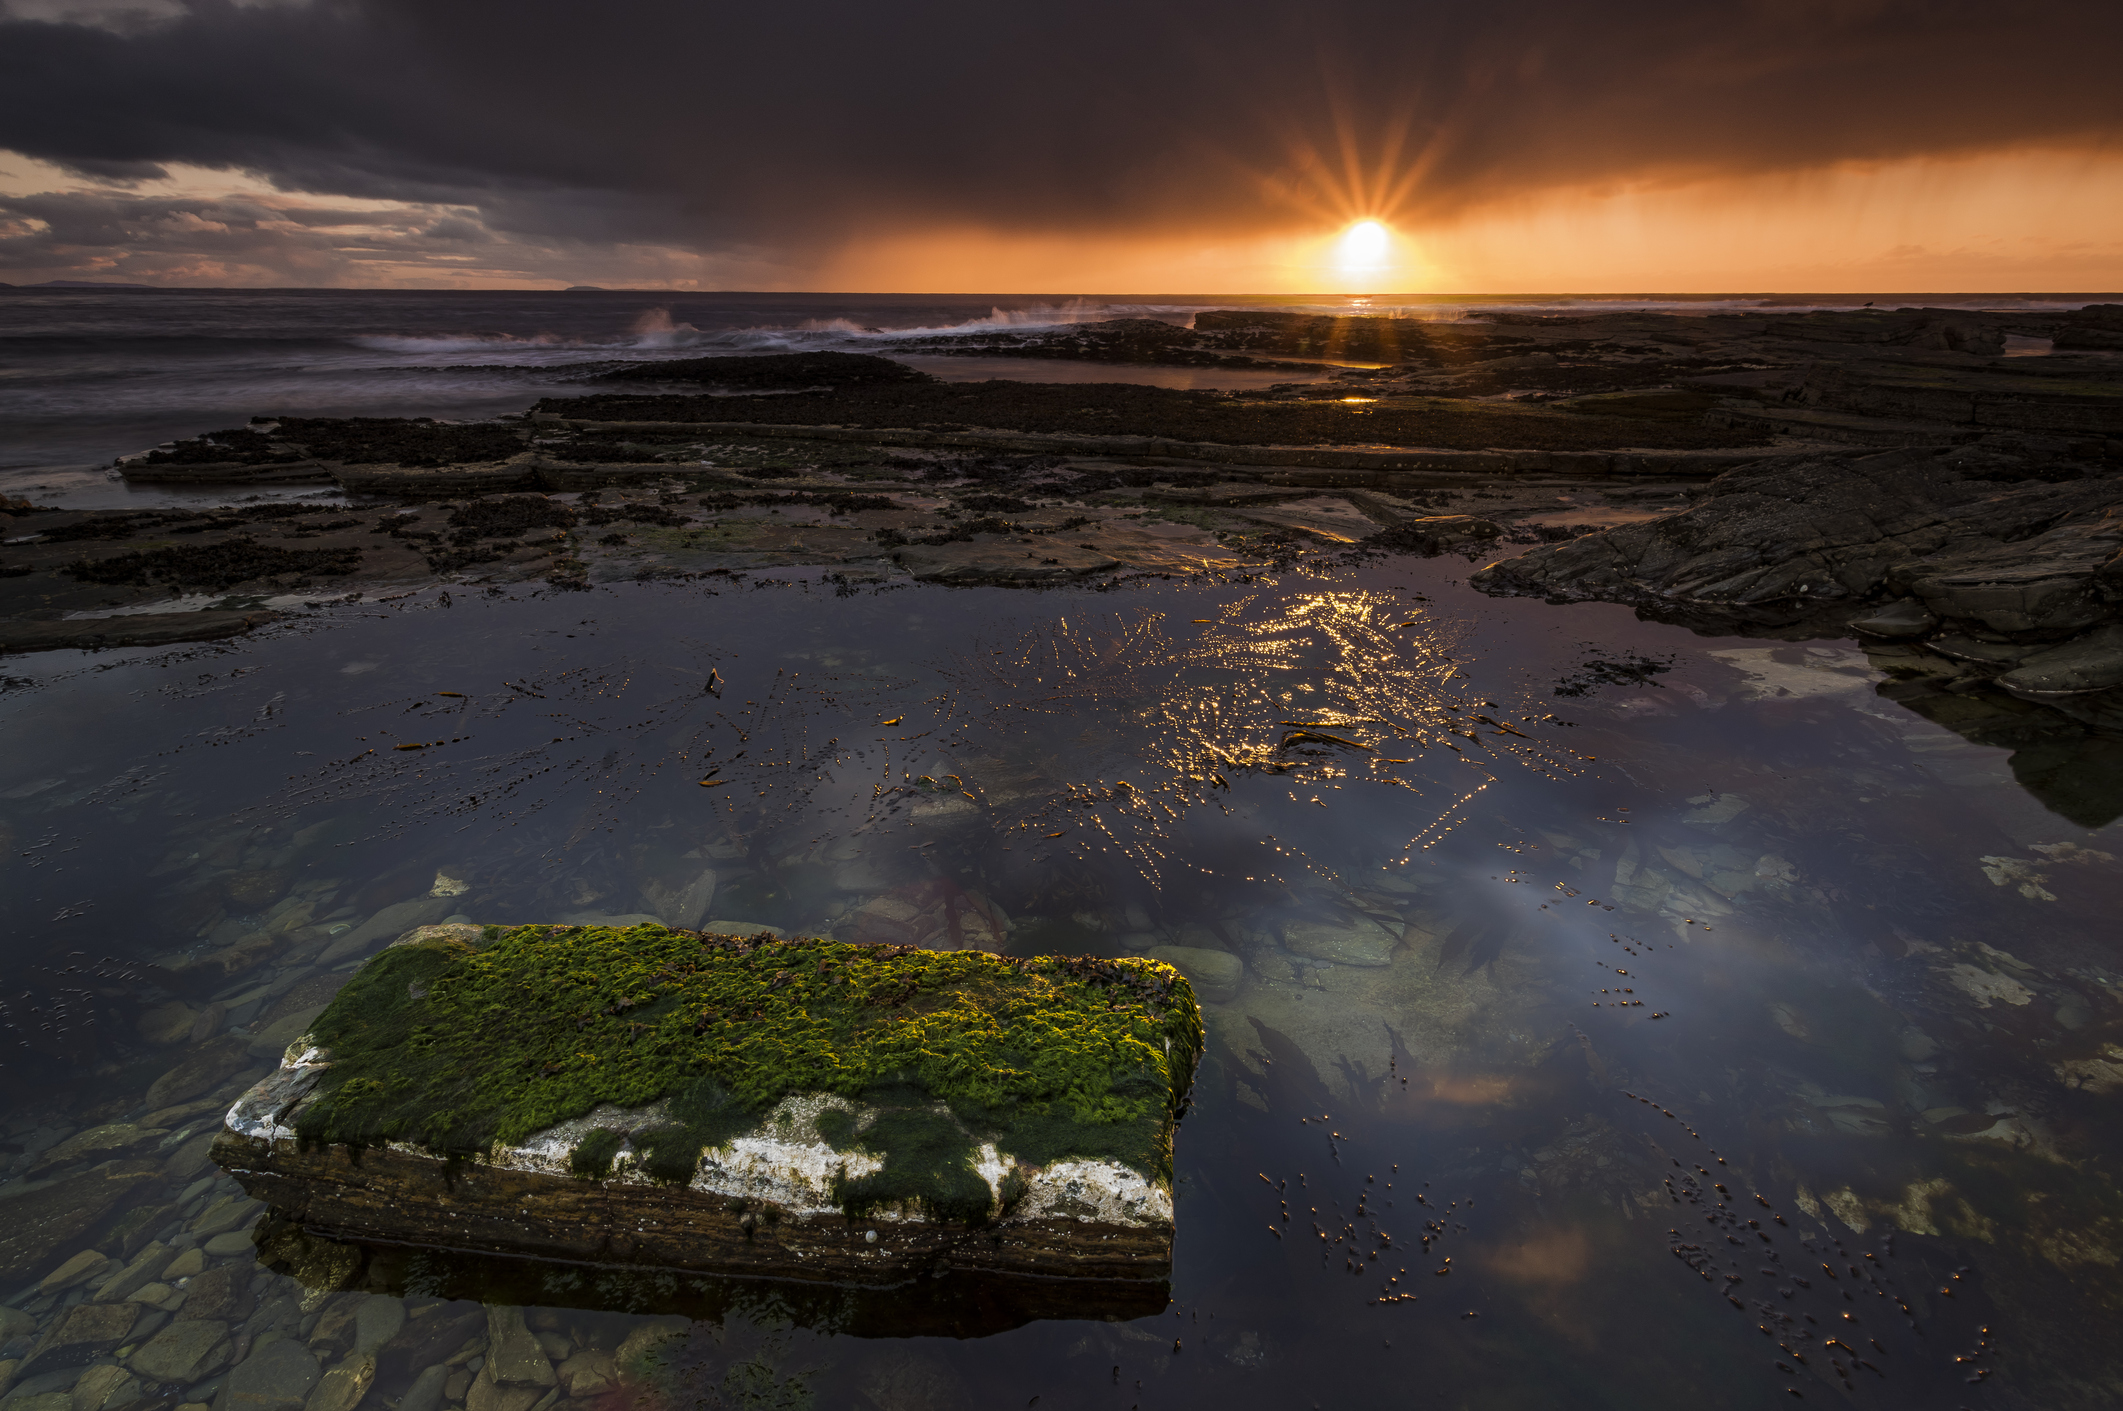 The rugged coastline of North Ronaldsay. in the Orkney Islands at sunset